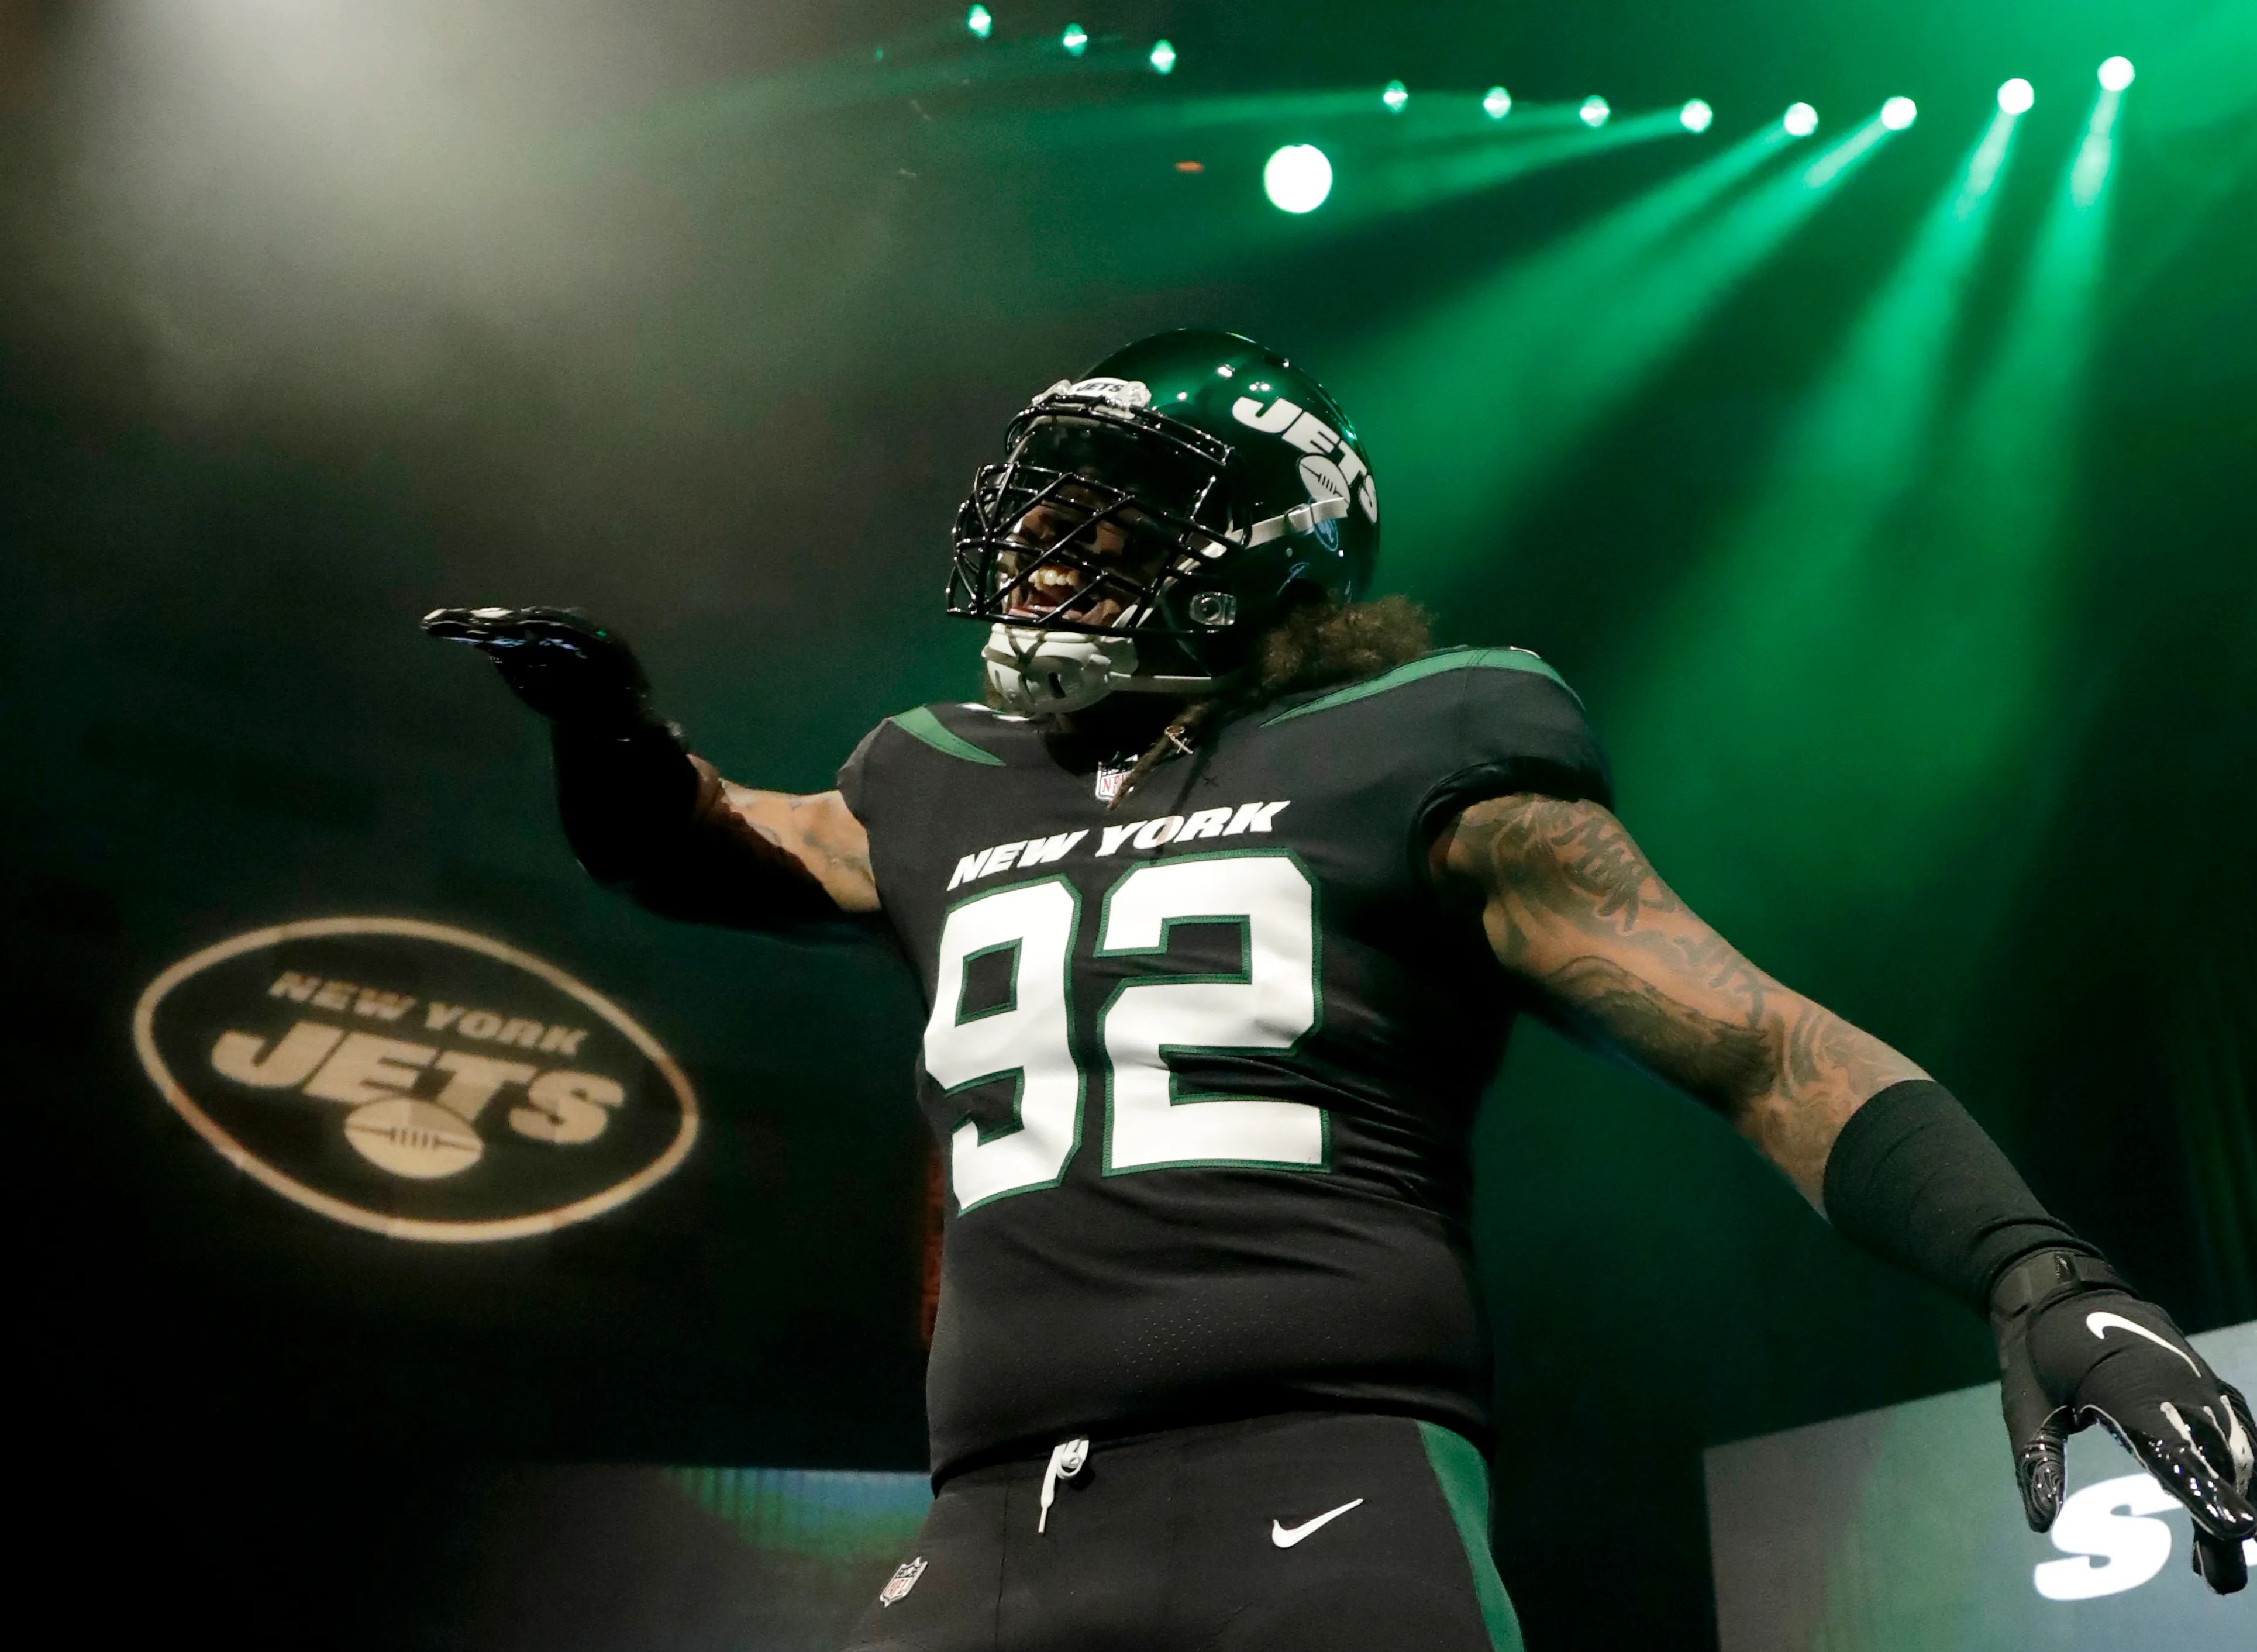 New York Jets unveil new uniforms